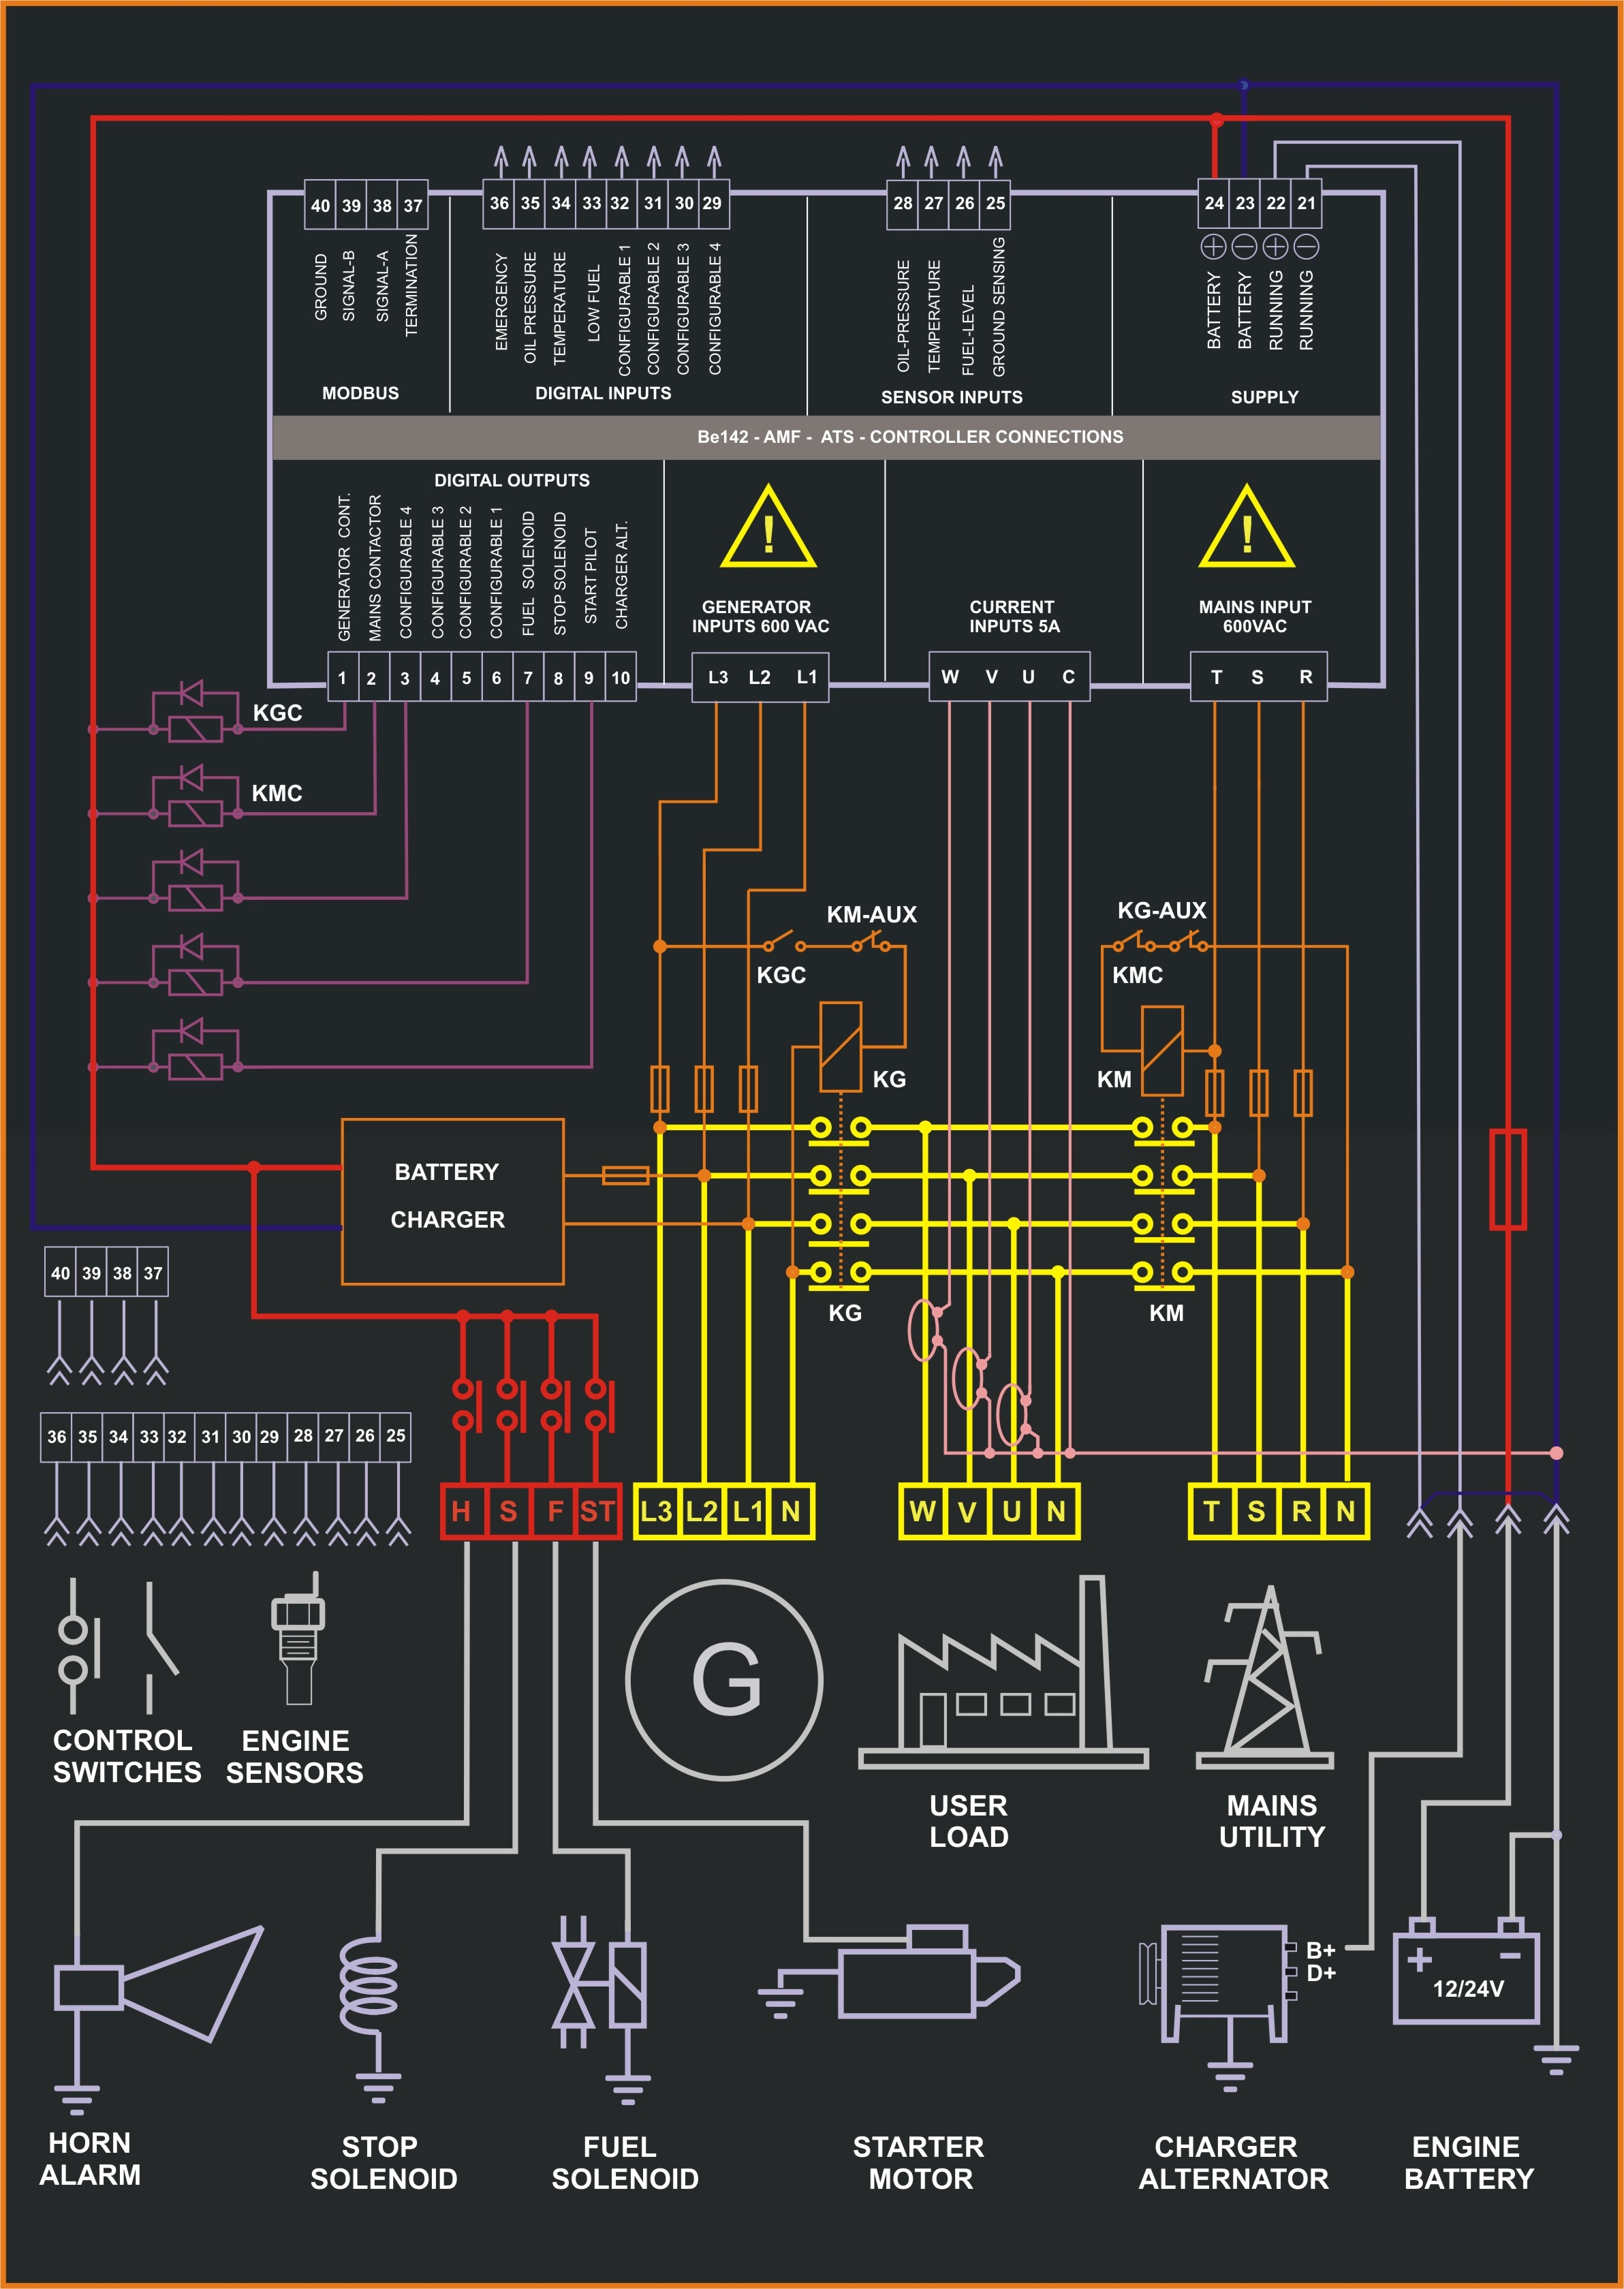 AMF Control Panel Circuit Diagram Be142 automatic mains failure control panel genset controller controller wire diagram for 3246e2 lift at crackthecode.co